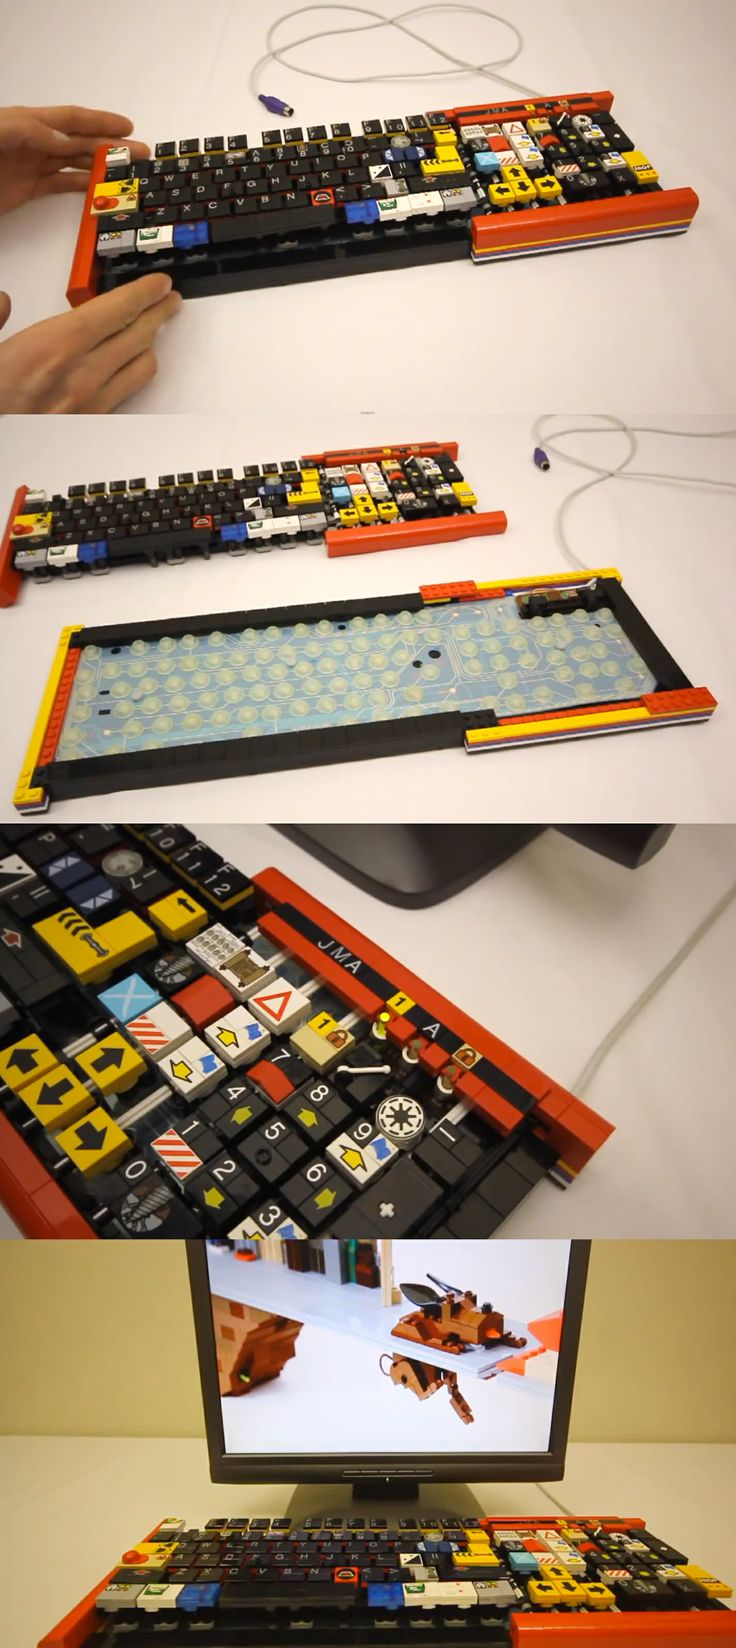 Awesome Lego Keyboard!